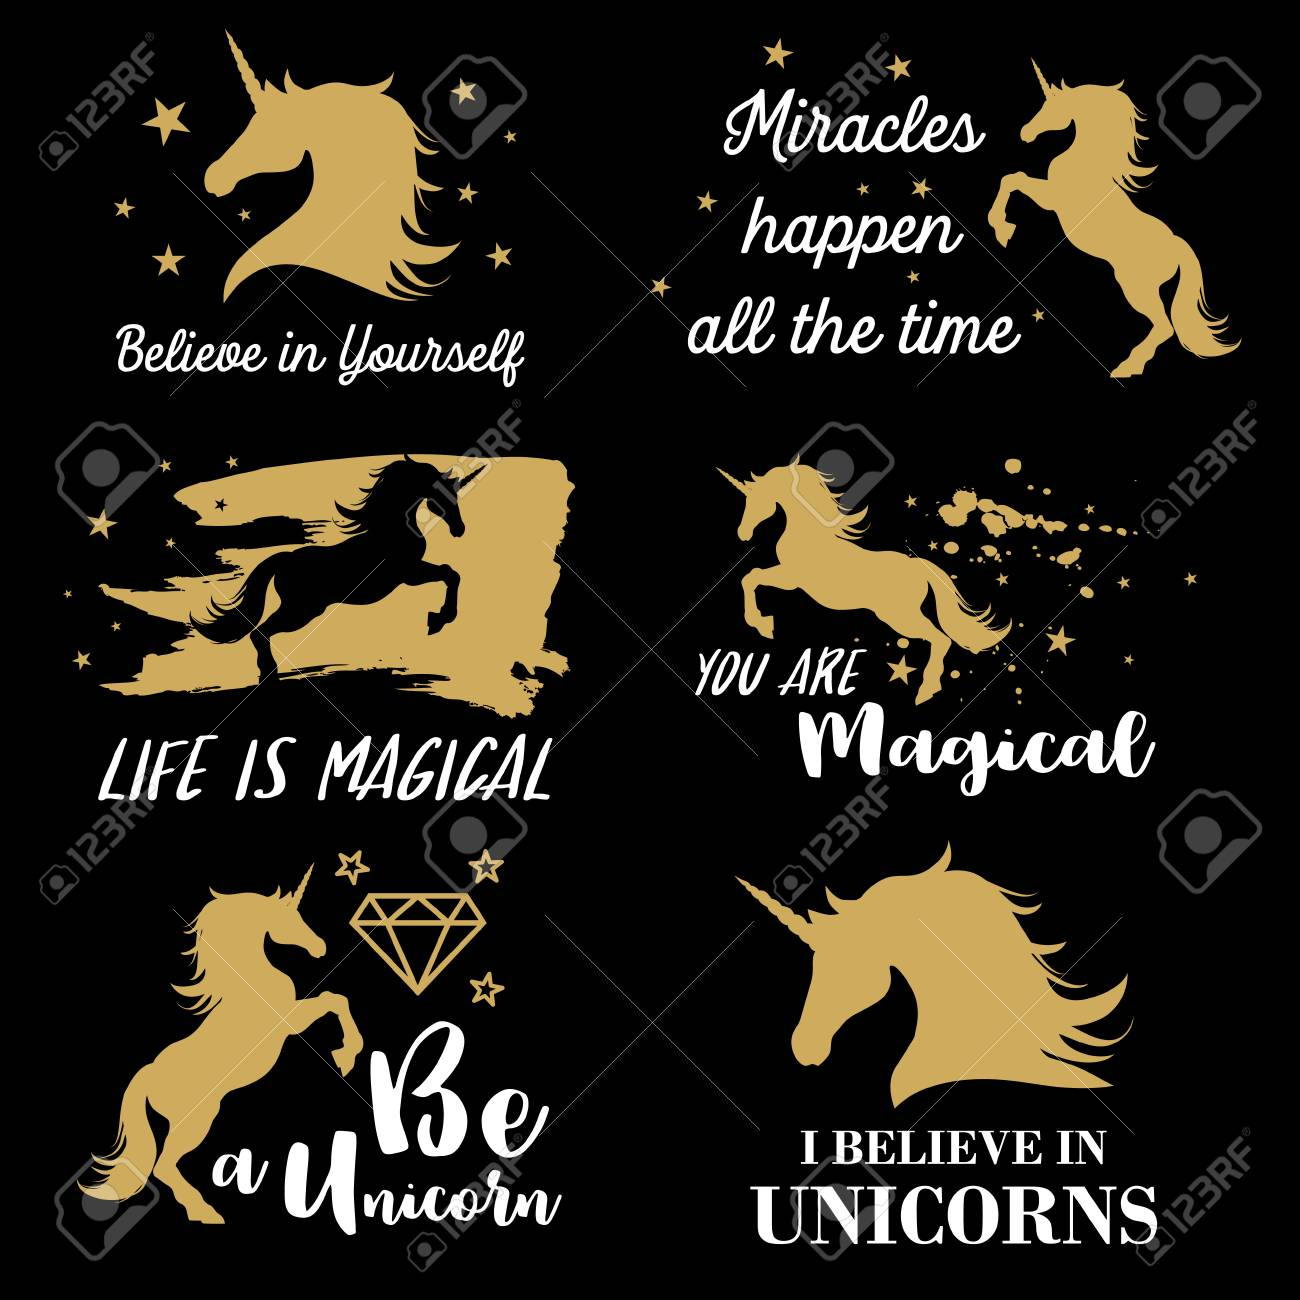 Illustration Of Unicorn With Motivation And Inspirational Quotes